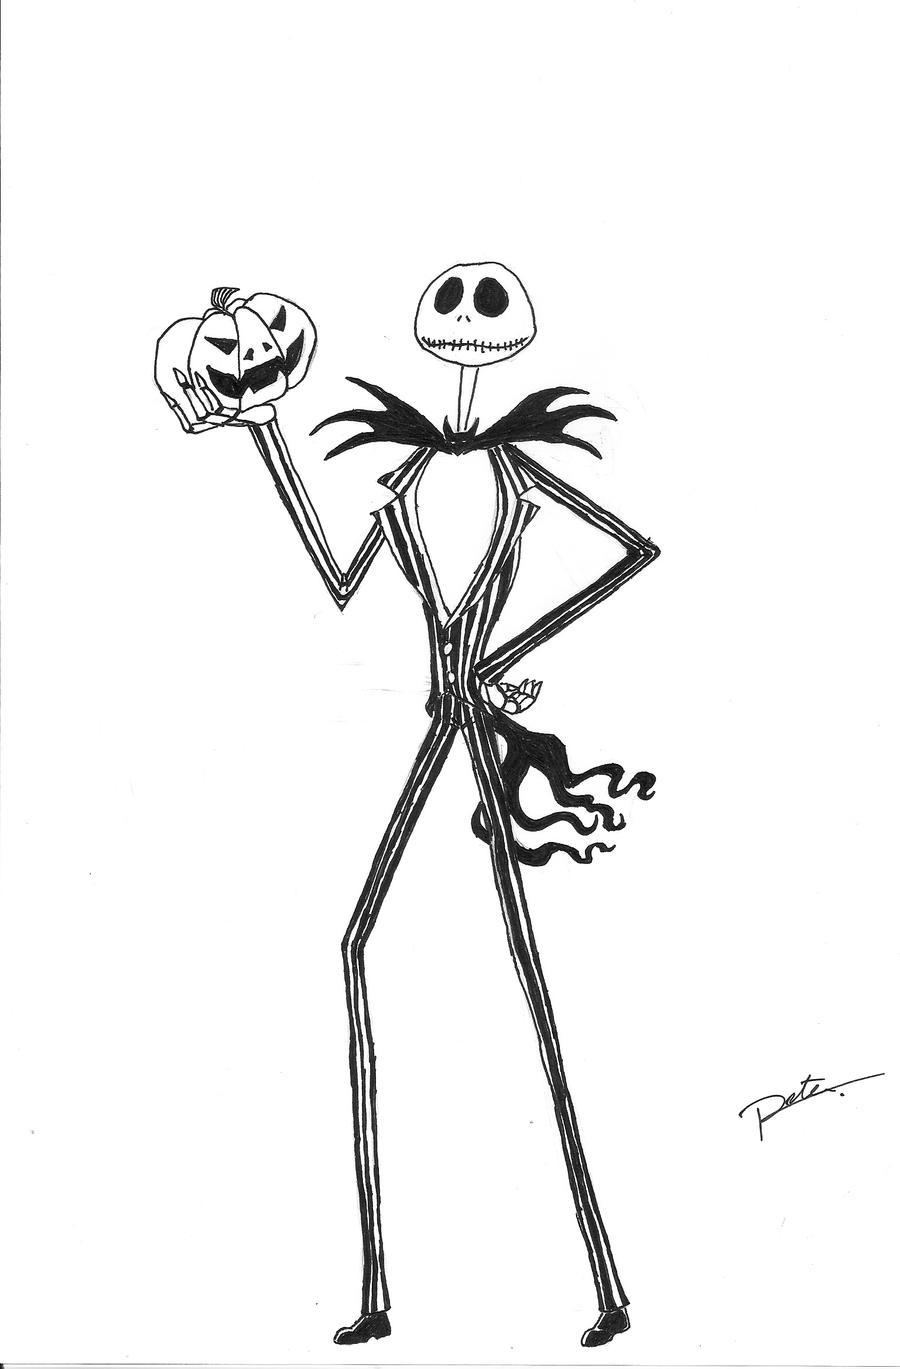 Jack Skellington Holding A Pumpkin By Kyrens64 On Deviantart